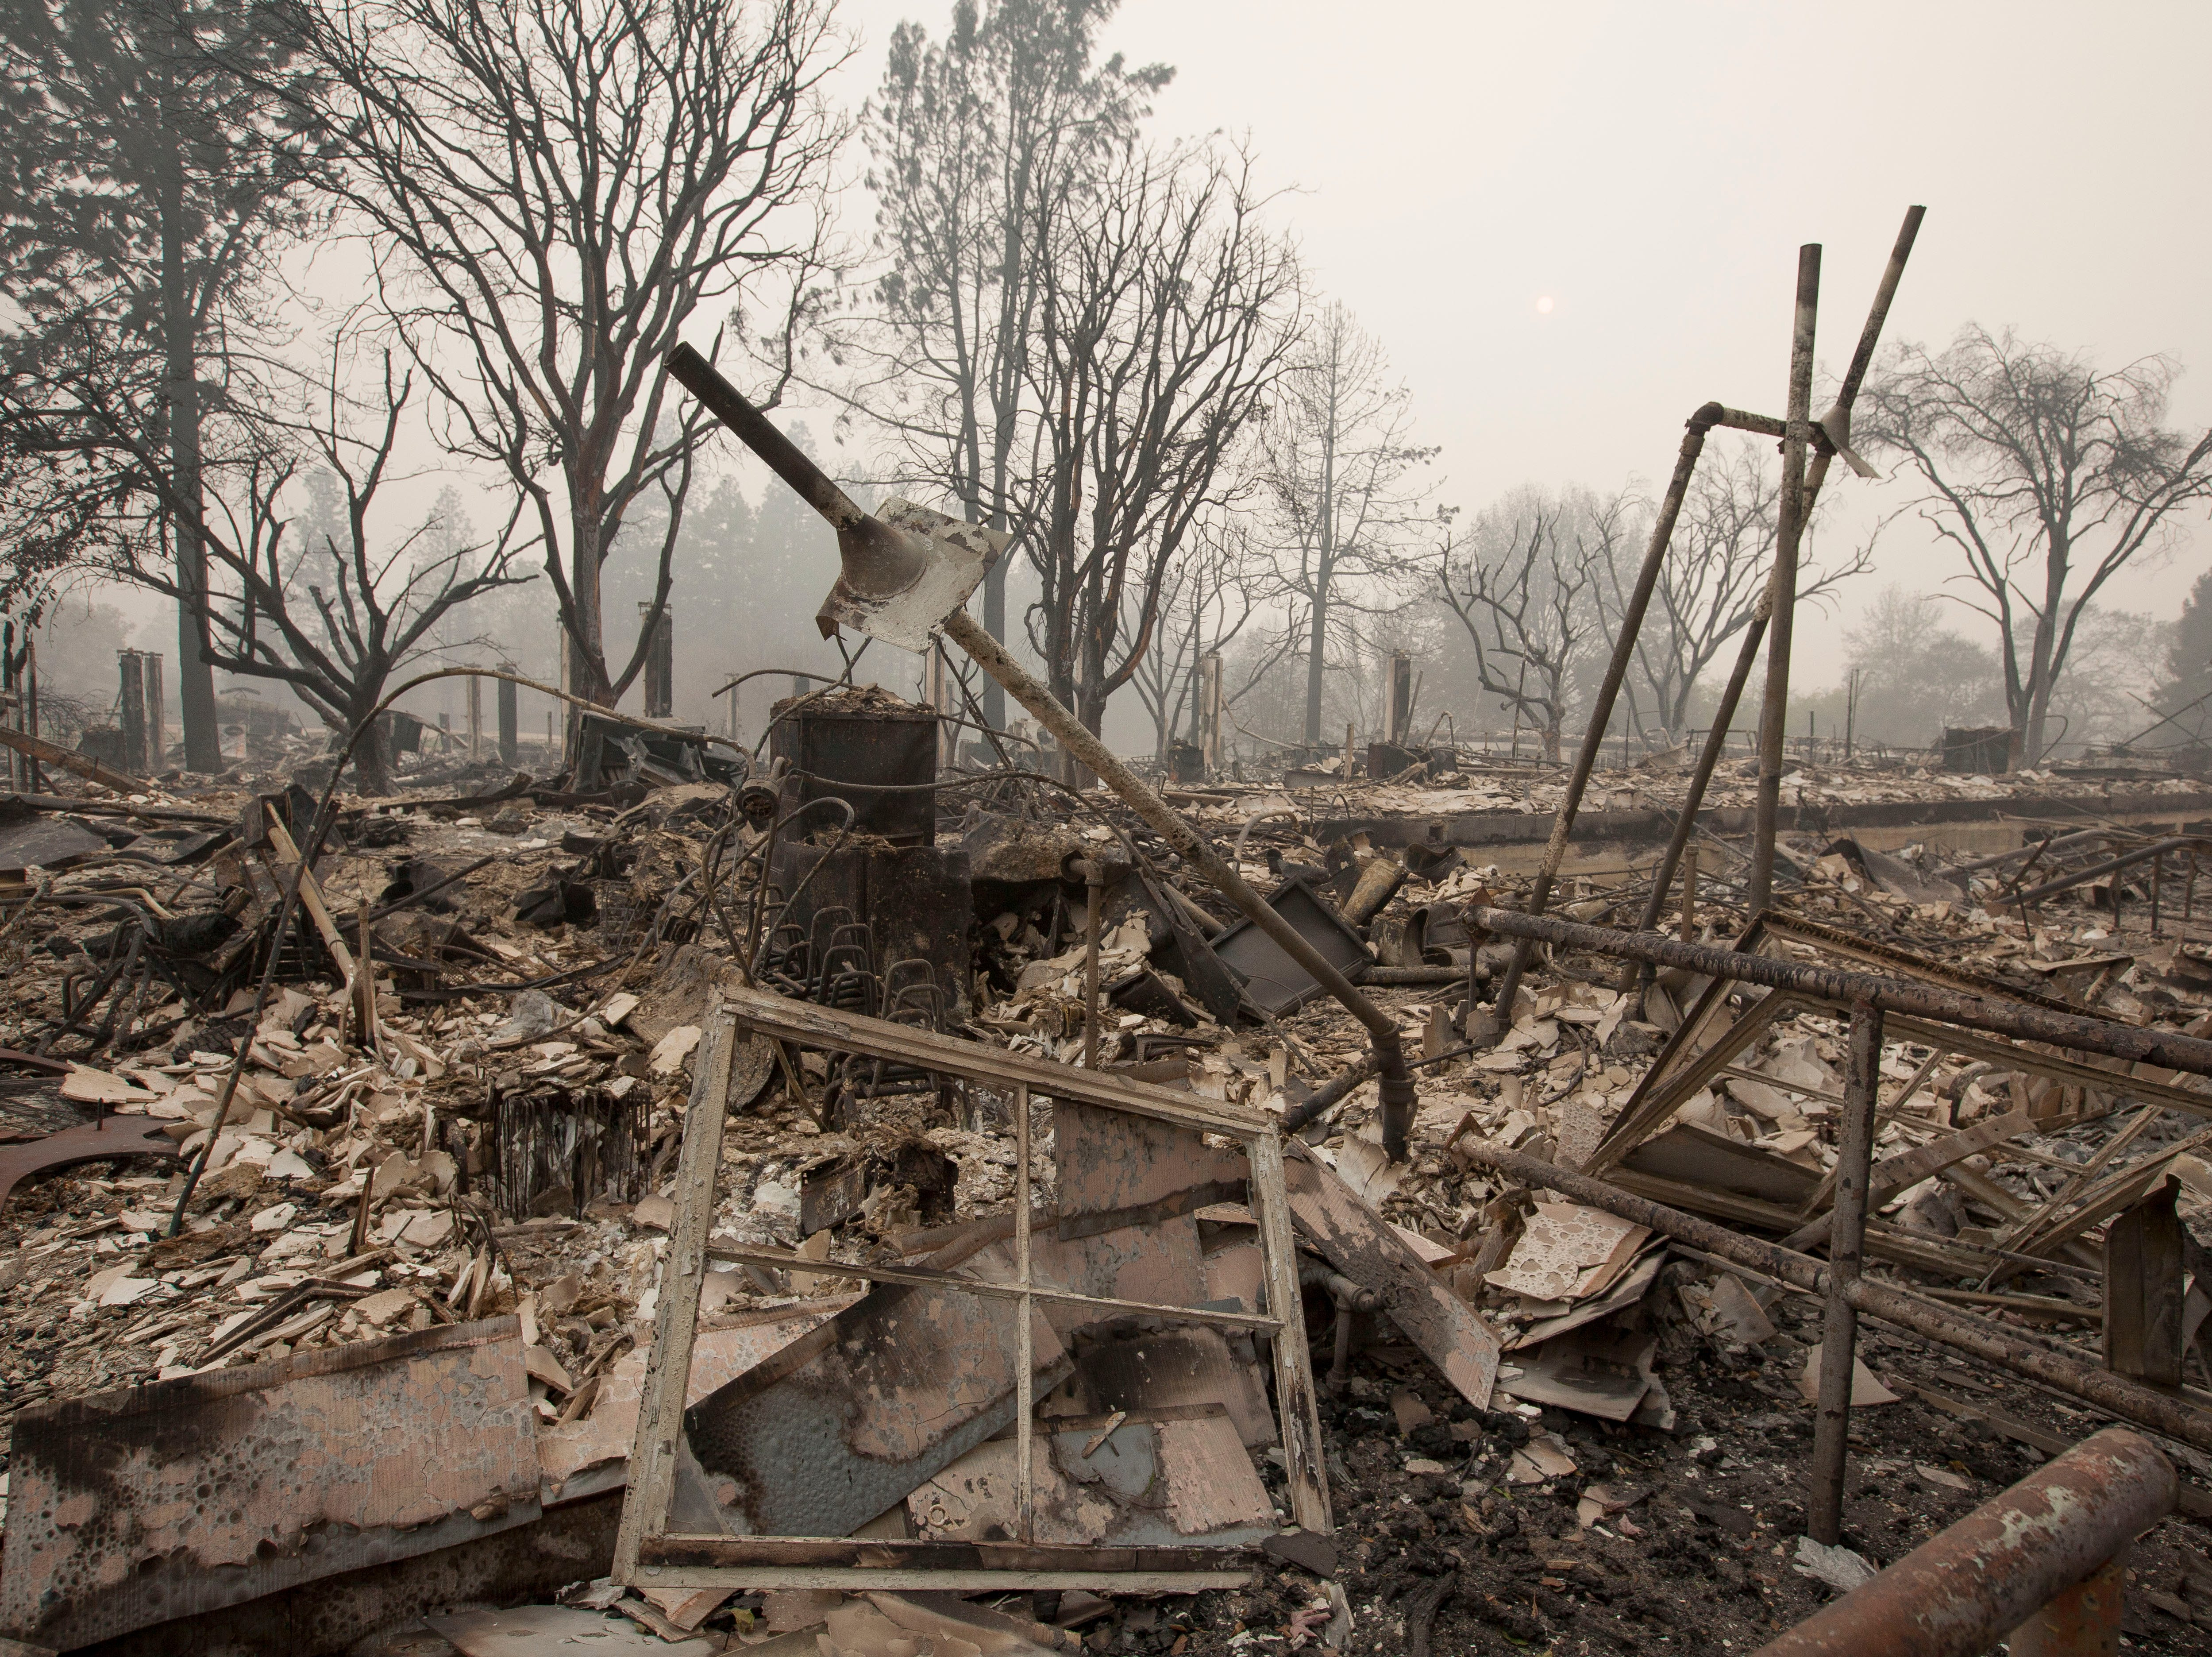 Very little remains of Paradise Elementary School in Paradise, CA, after the Camp Fire devastated the area.